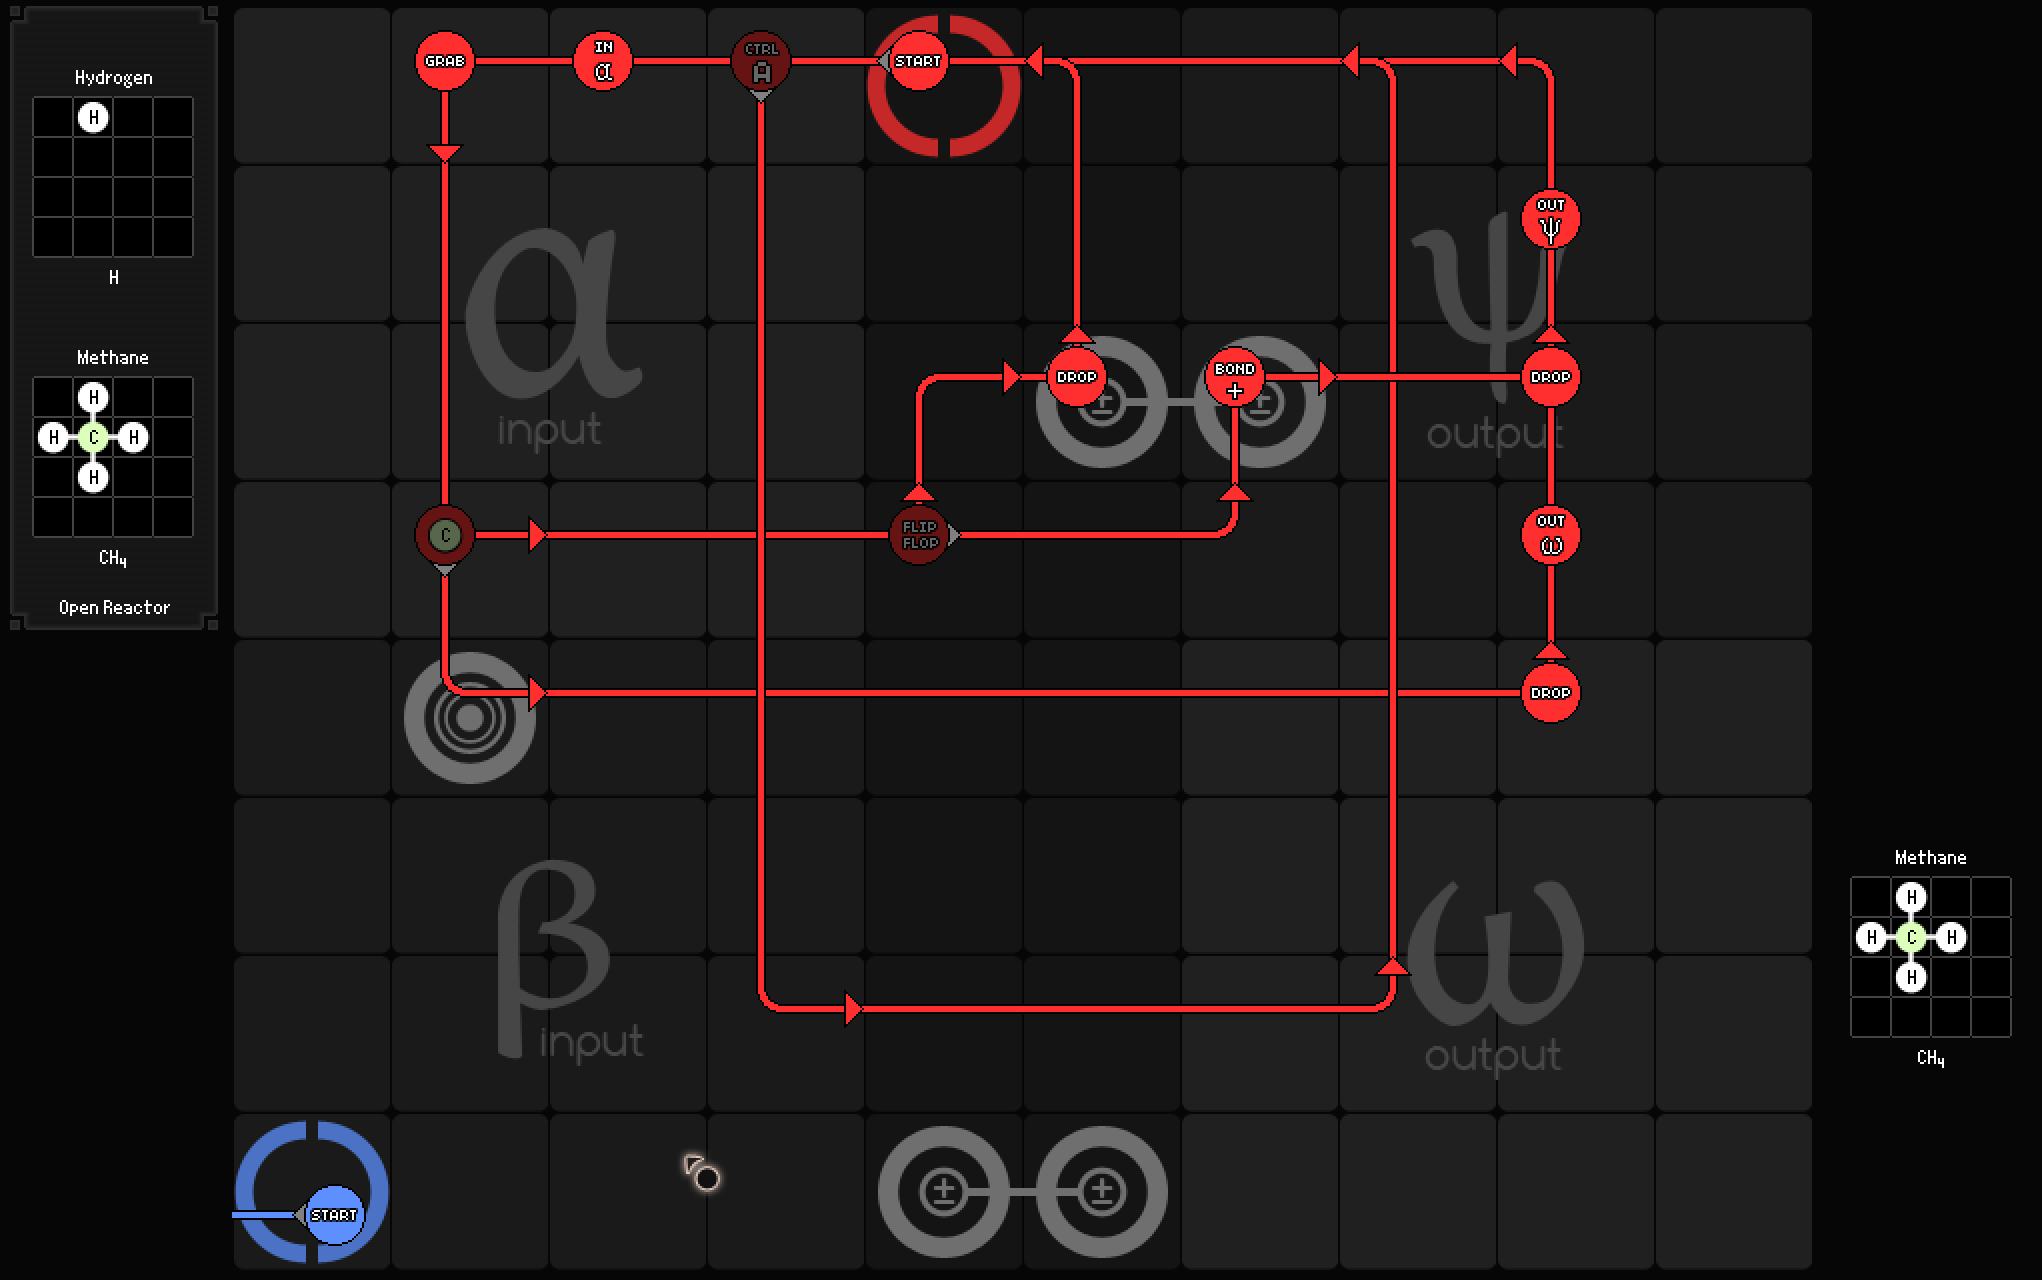 1_Story_Mode/7_Atropos_Station/SpaceChem-7.6.a-boss/Reactor_3.png